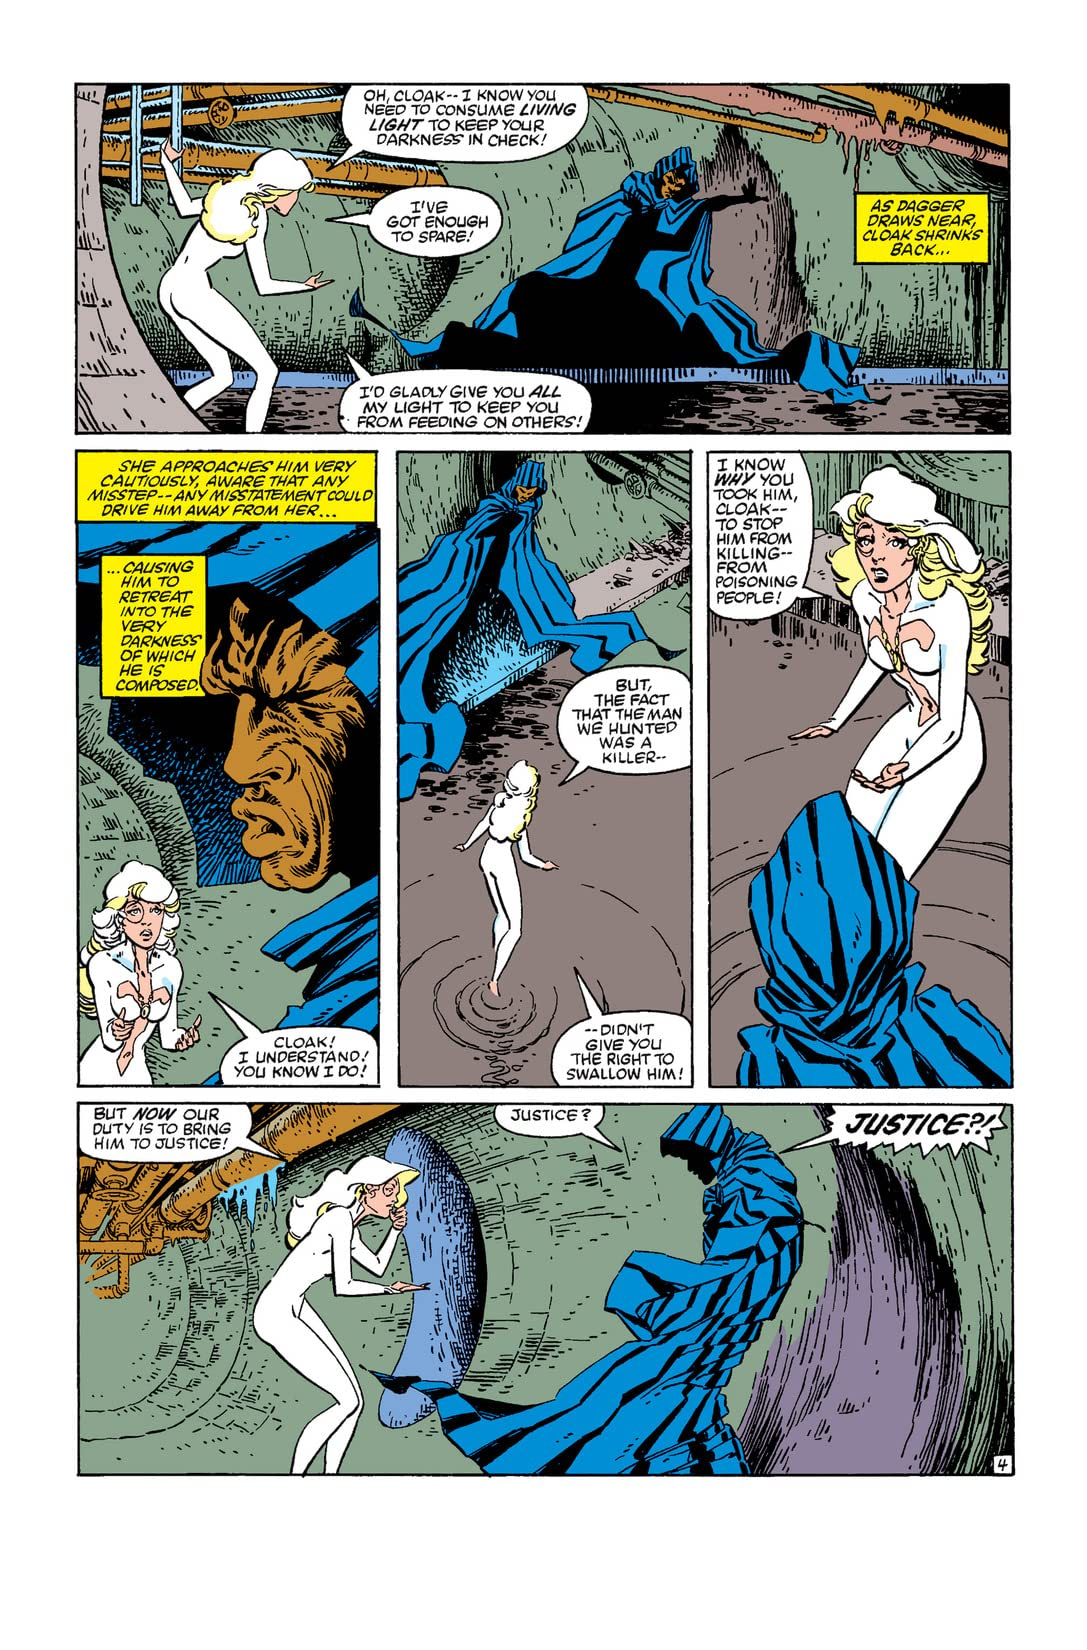 Cloak and Dagger (1983) #3 (of 4)